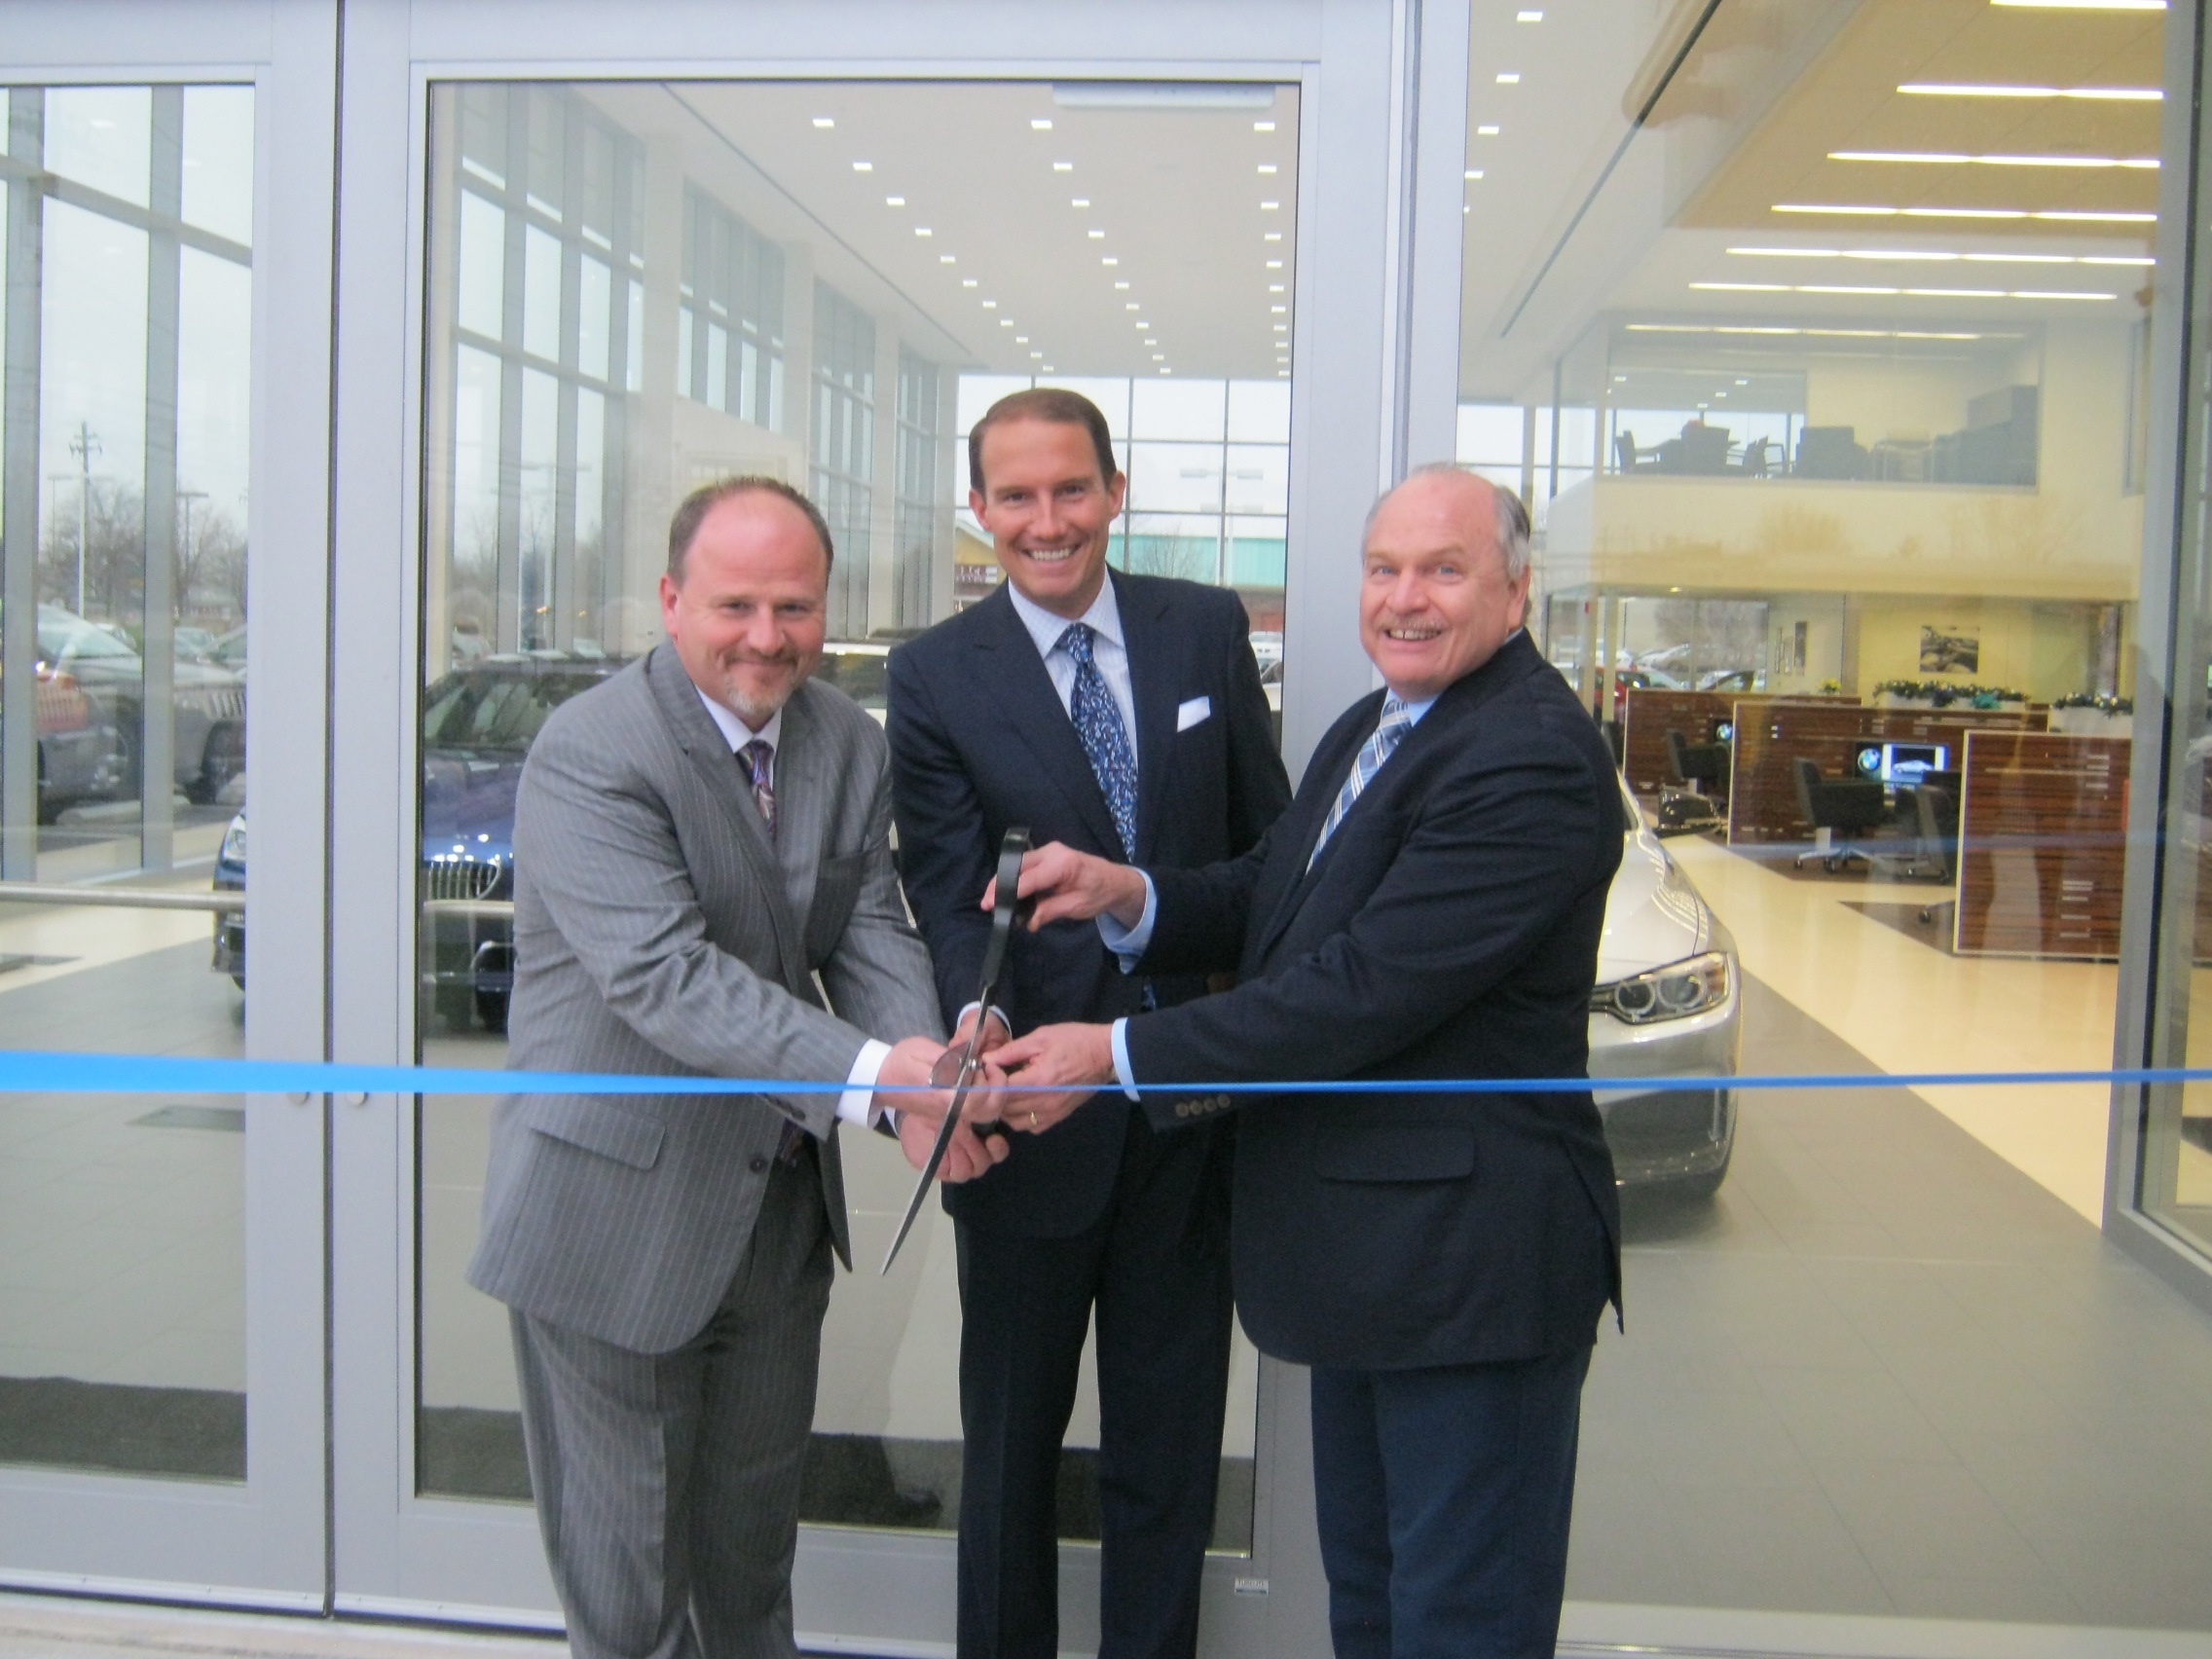 Adam moon of bmw of westlake l to r along with ken ganley of the ganley auto group and westlake mayor dennis clough cut the ribbon on the new store